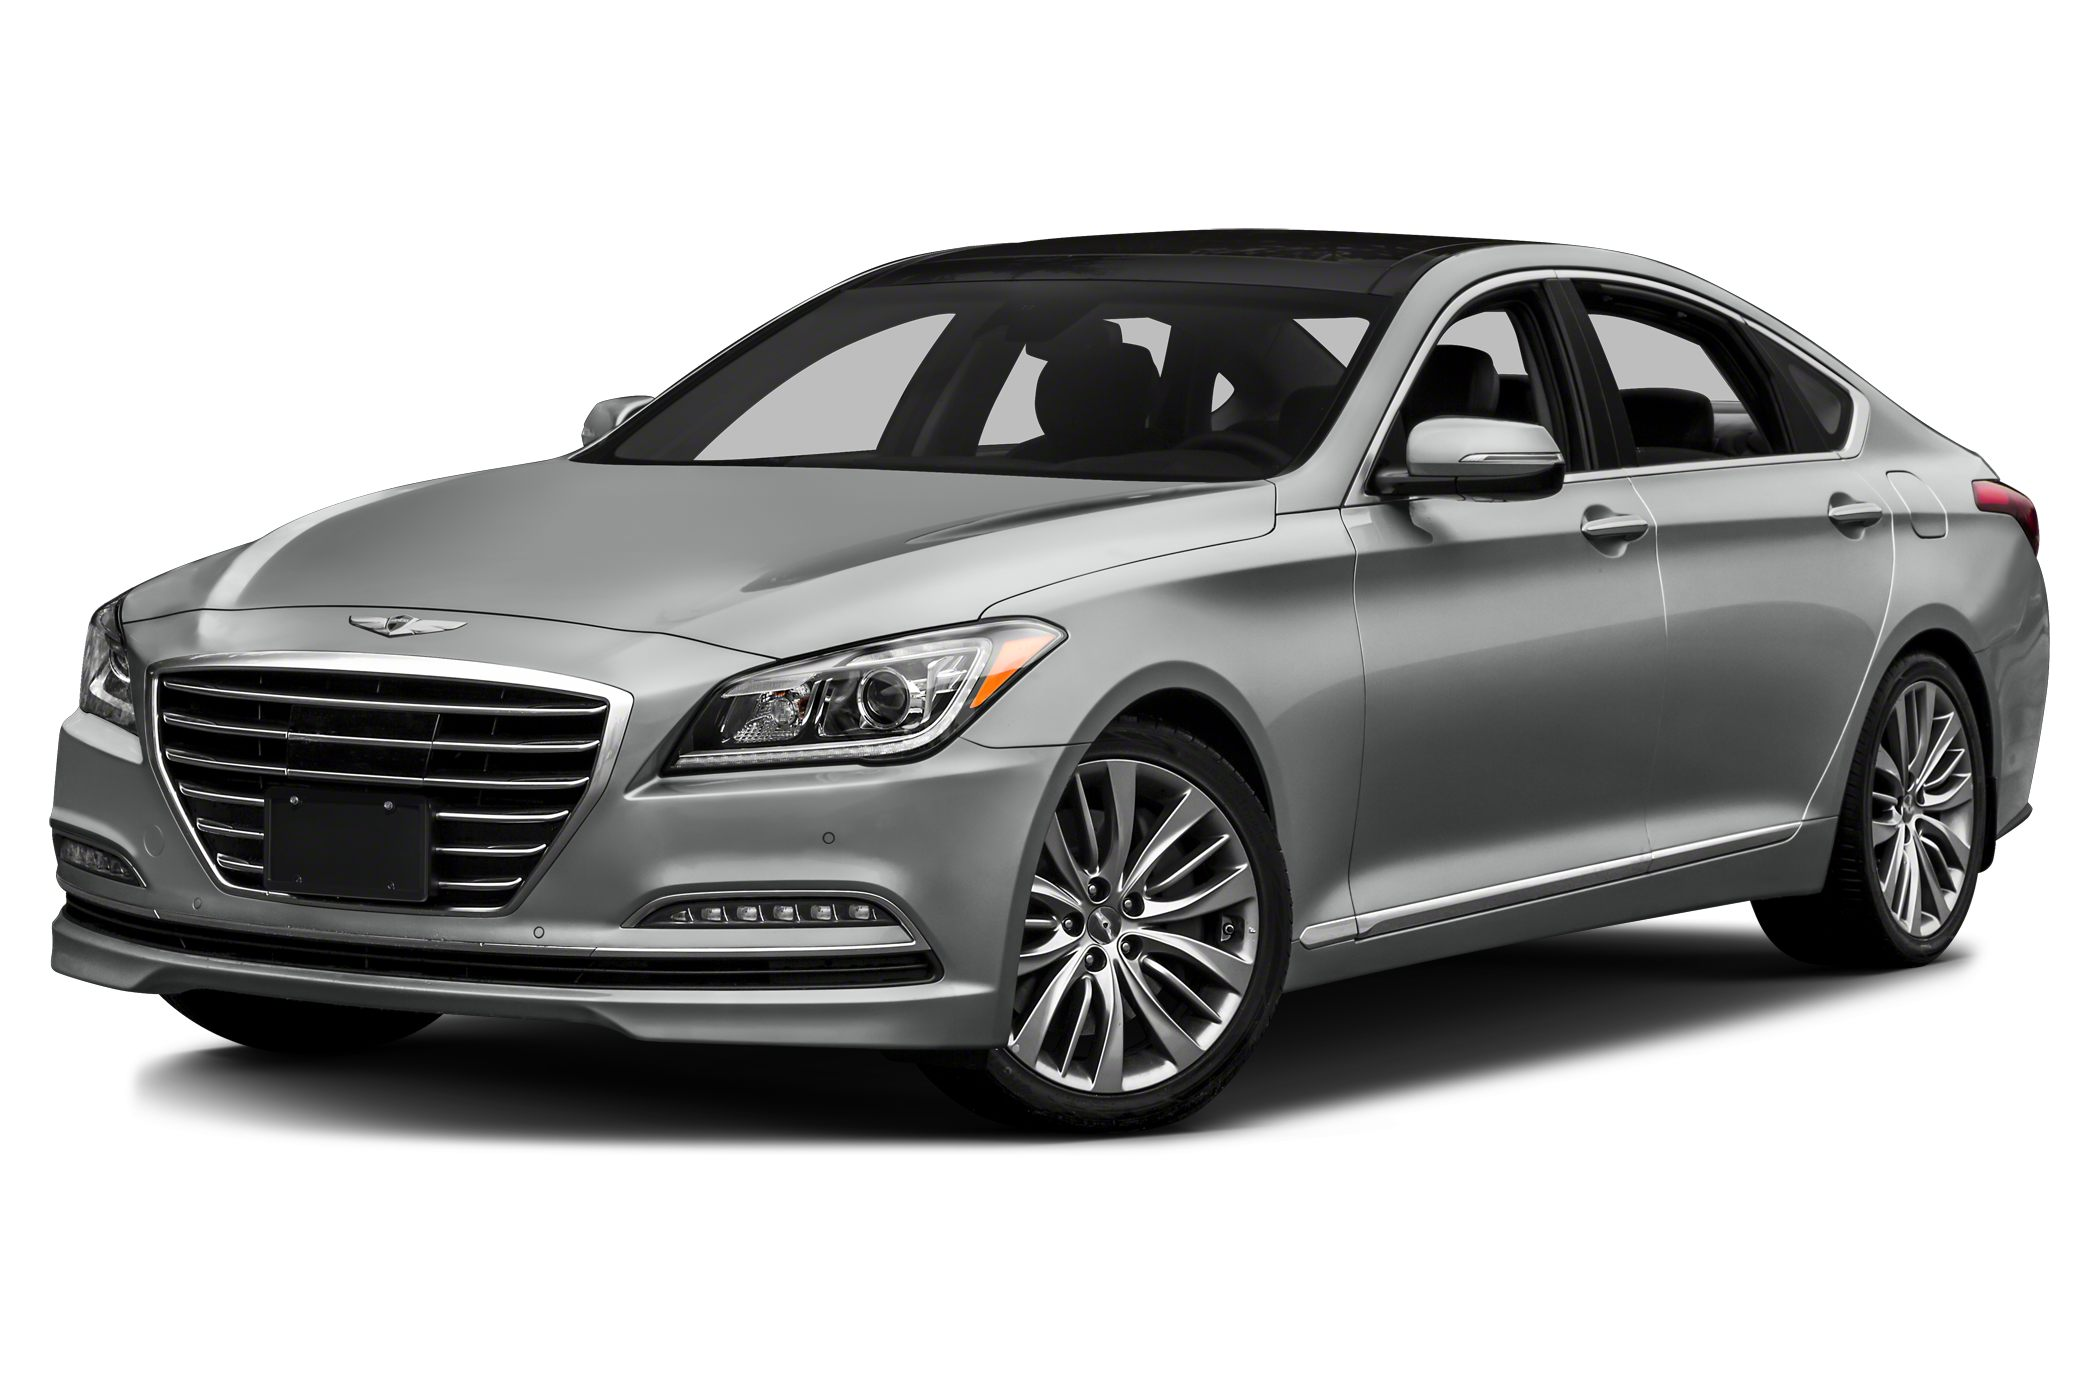 2015 Hyundai Genesis 3.8 Sedan for sale in Memphis for $50,175 with 15 miles.